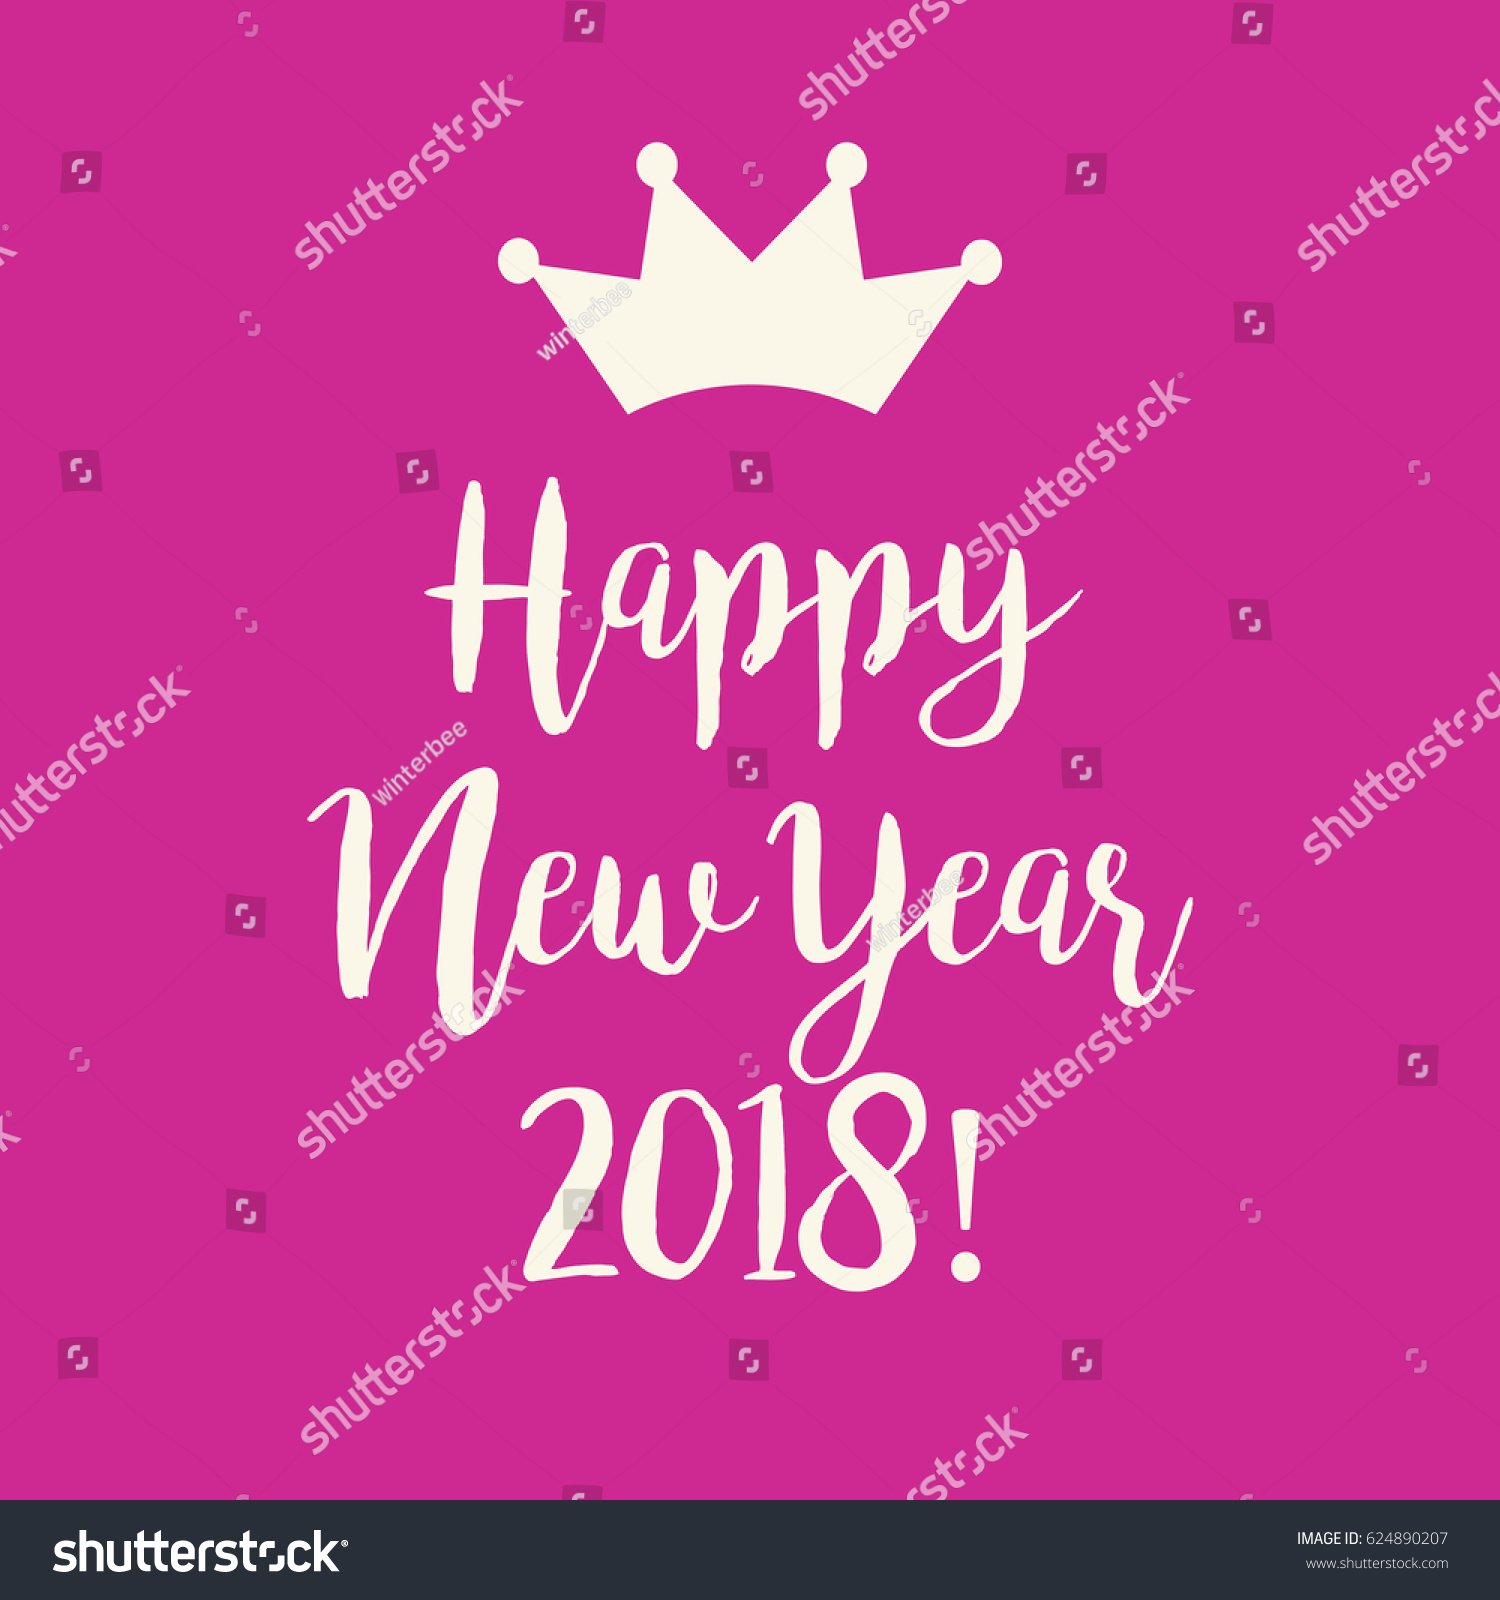 cute simple pink happy new year 2018 greeting card with a crown